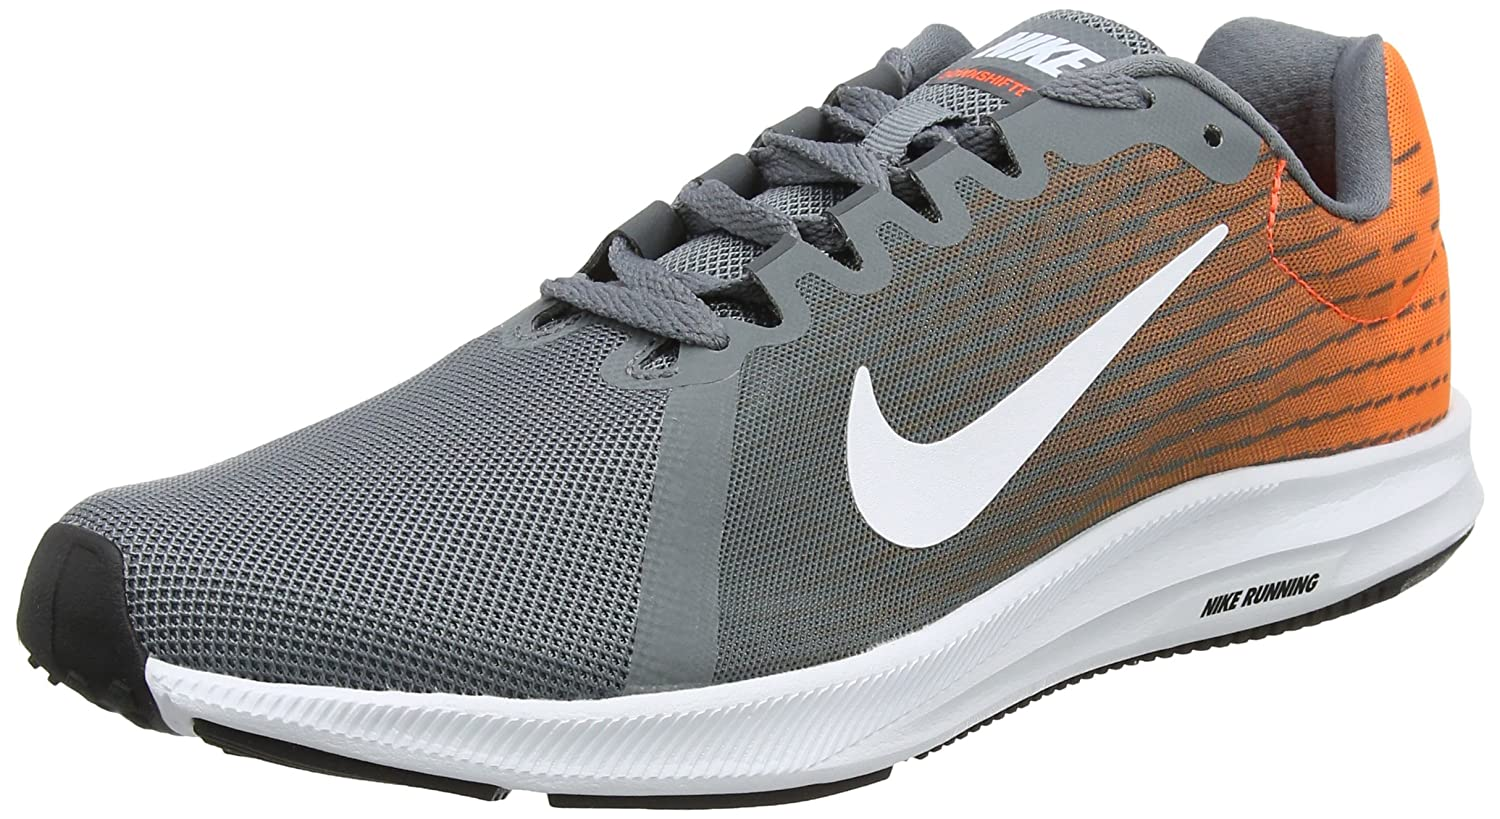 detailed look 38b14 6d3b5 Amazon.com   Nike Downshifter 8 Mens 908984-003 Size 9   Shoes